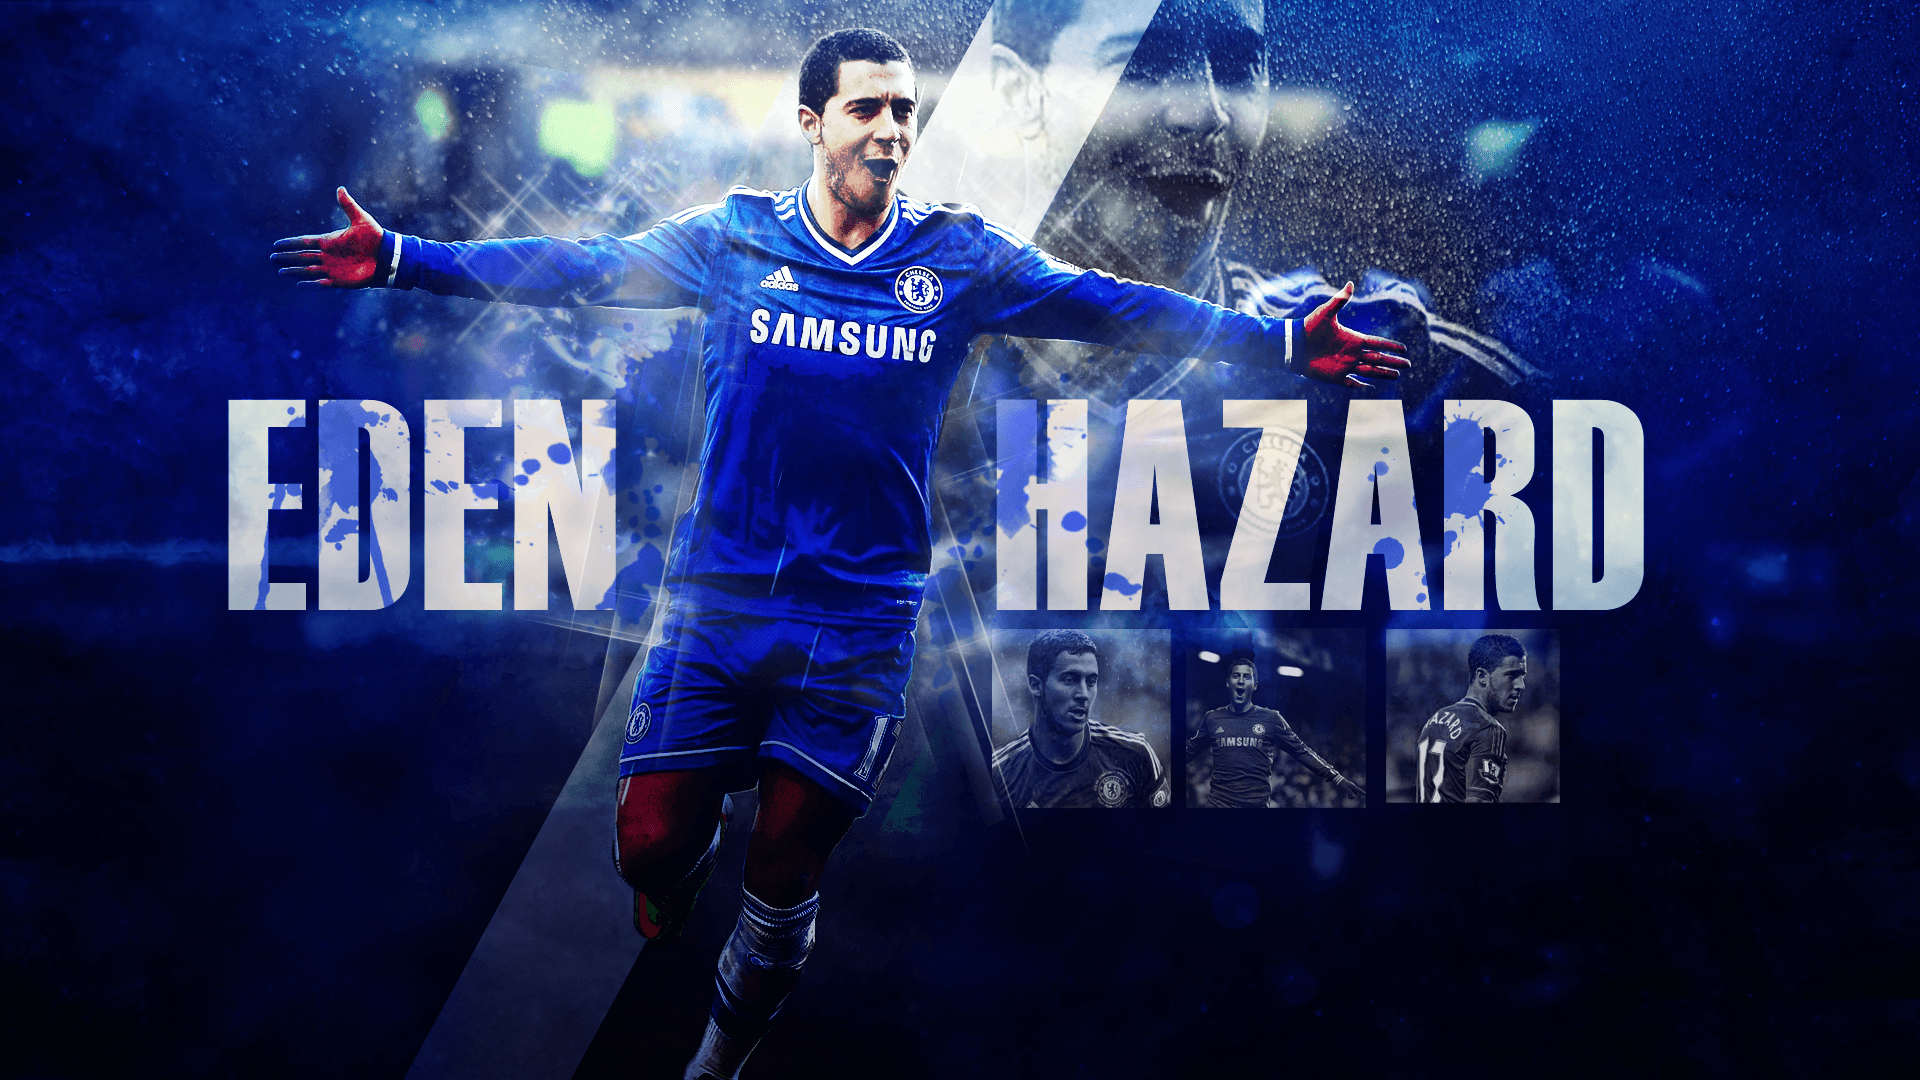 Eden hazard wallpapers wallpaper cave eden hazard chelsea voltagebd Image collections